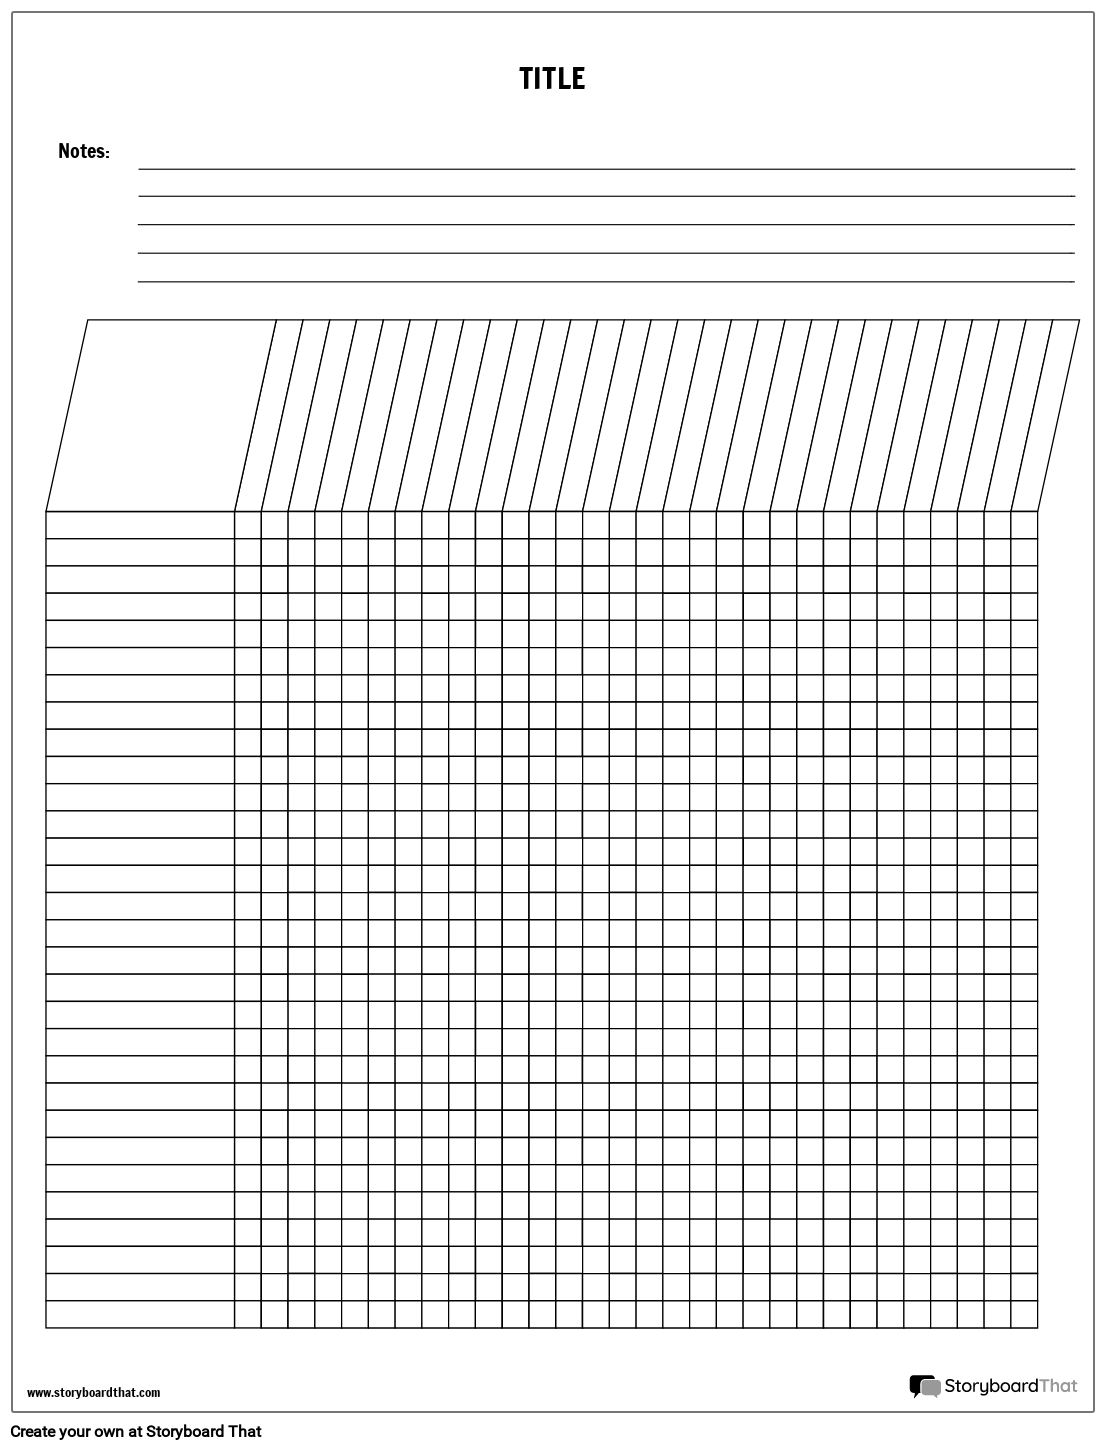 Vertical Grading Template Storyboard by worksheet-templates